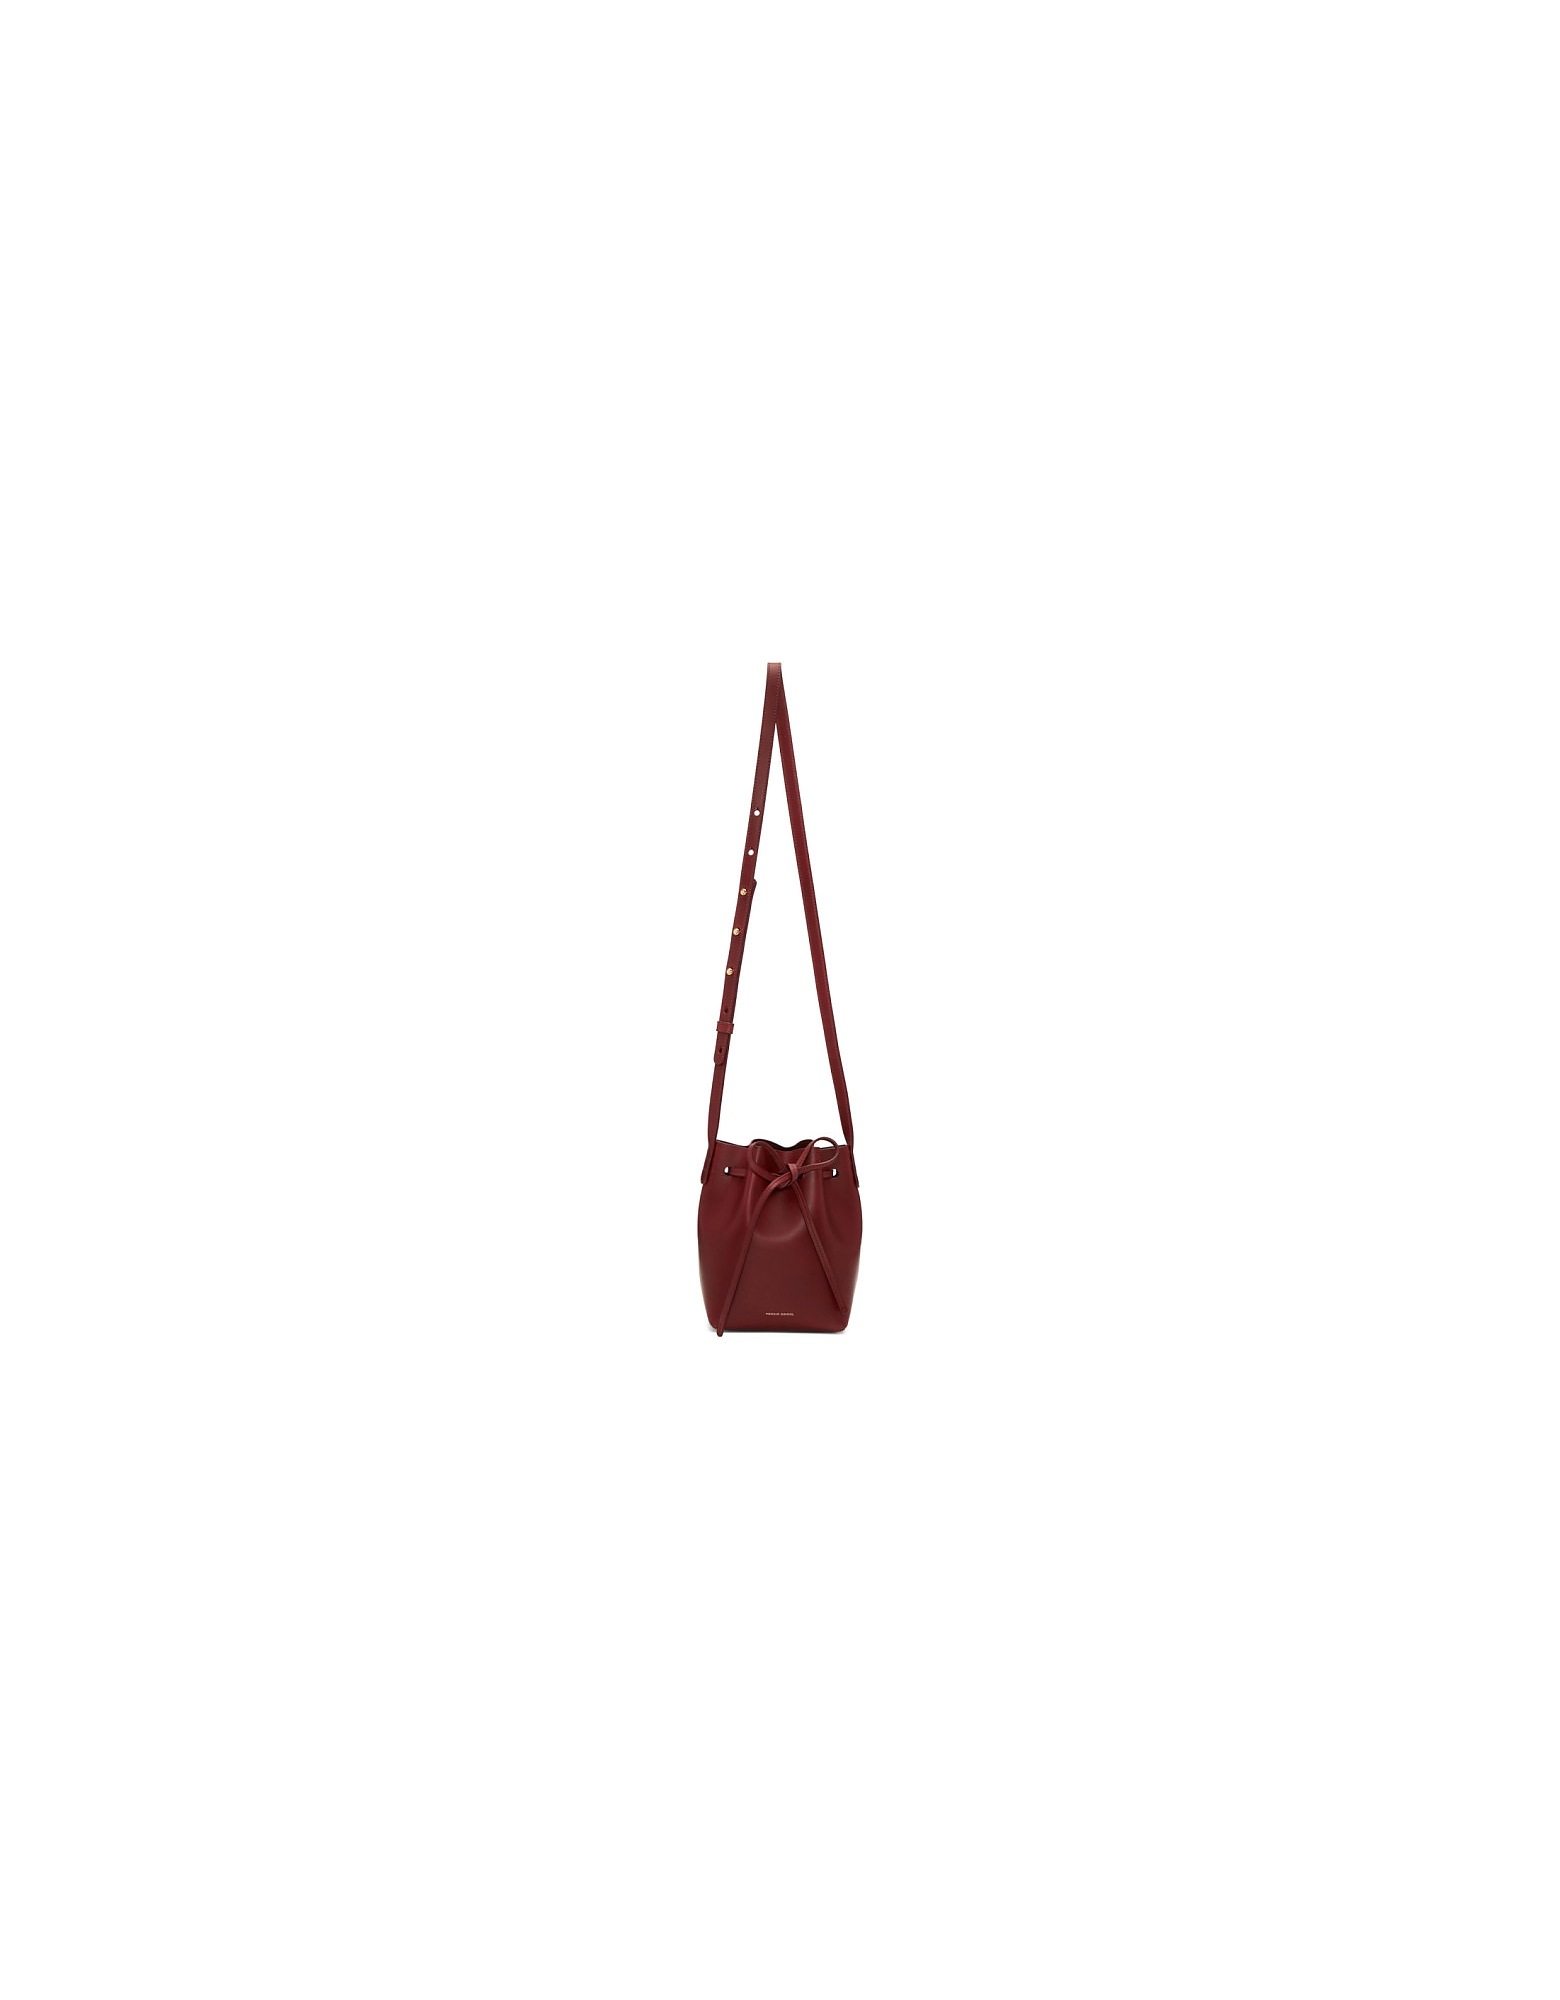 Mansur Gavriel Designer Handbags, Burgundy Mini Mini Bucket Bag